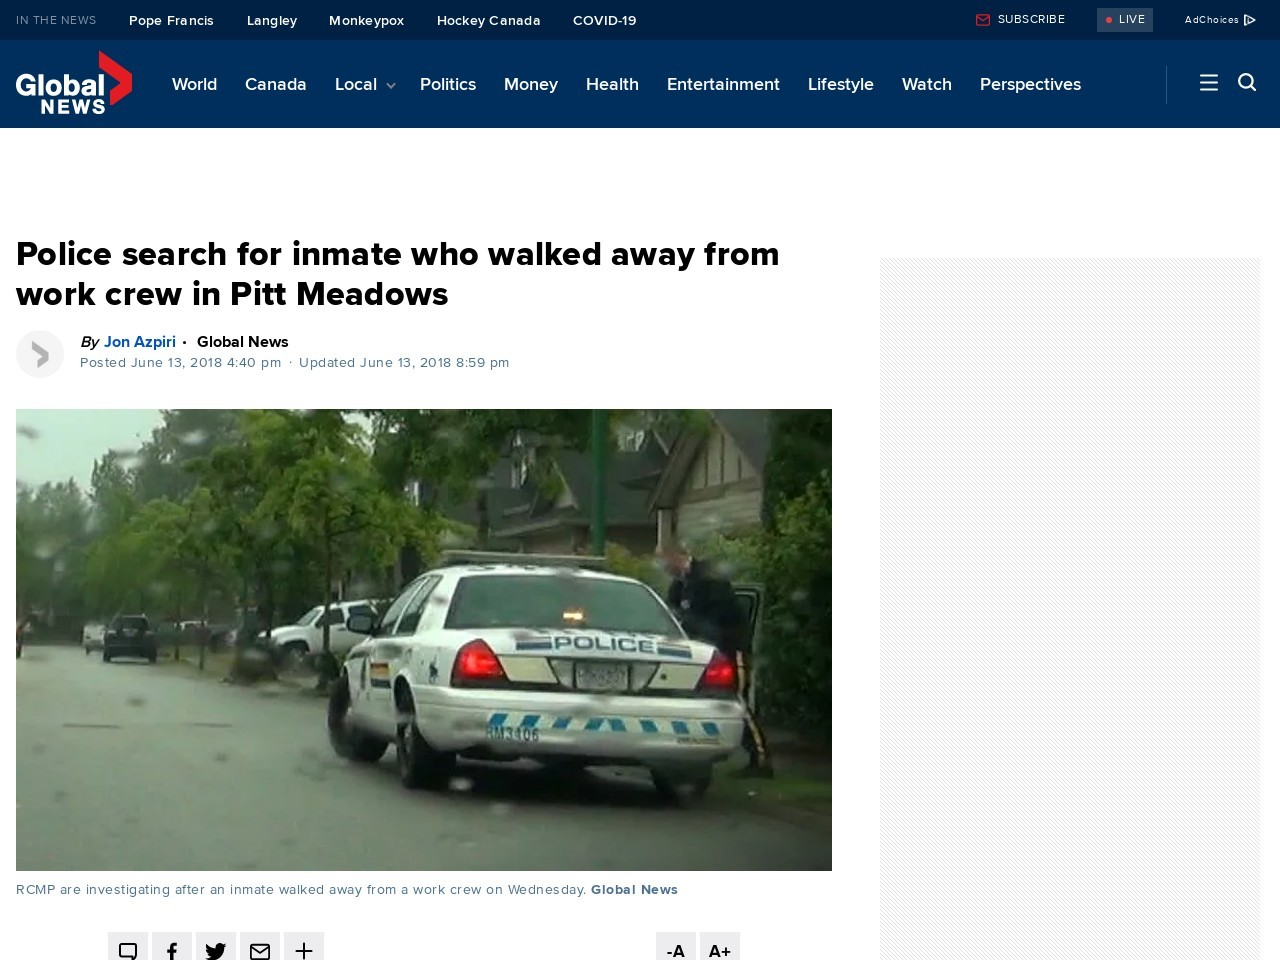 Police search for inmate who walked away from work crew in Pitt Meadows